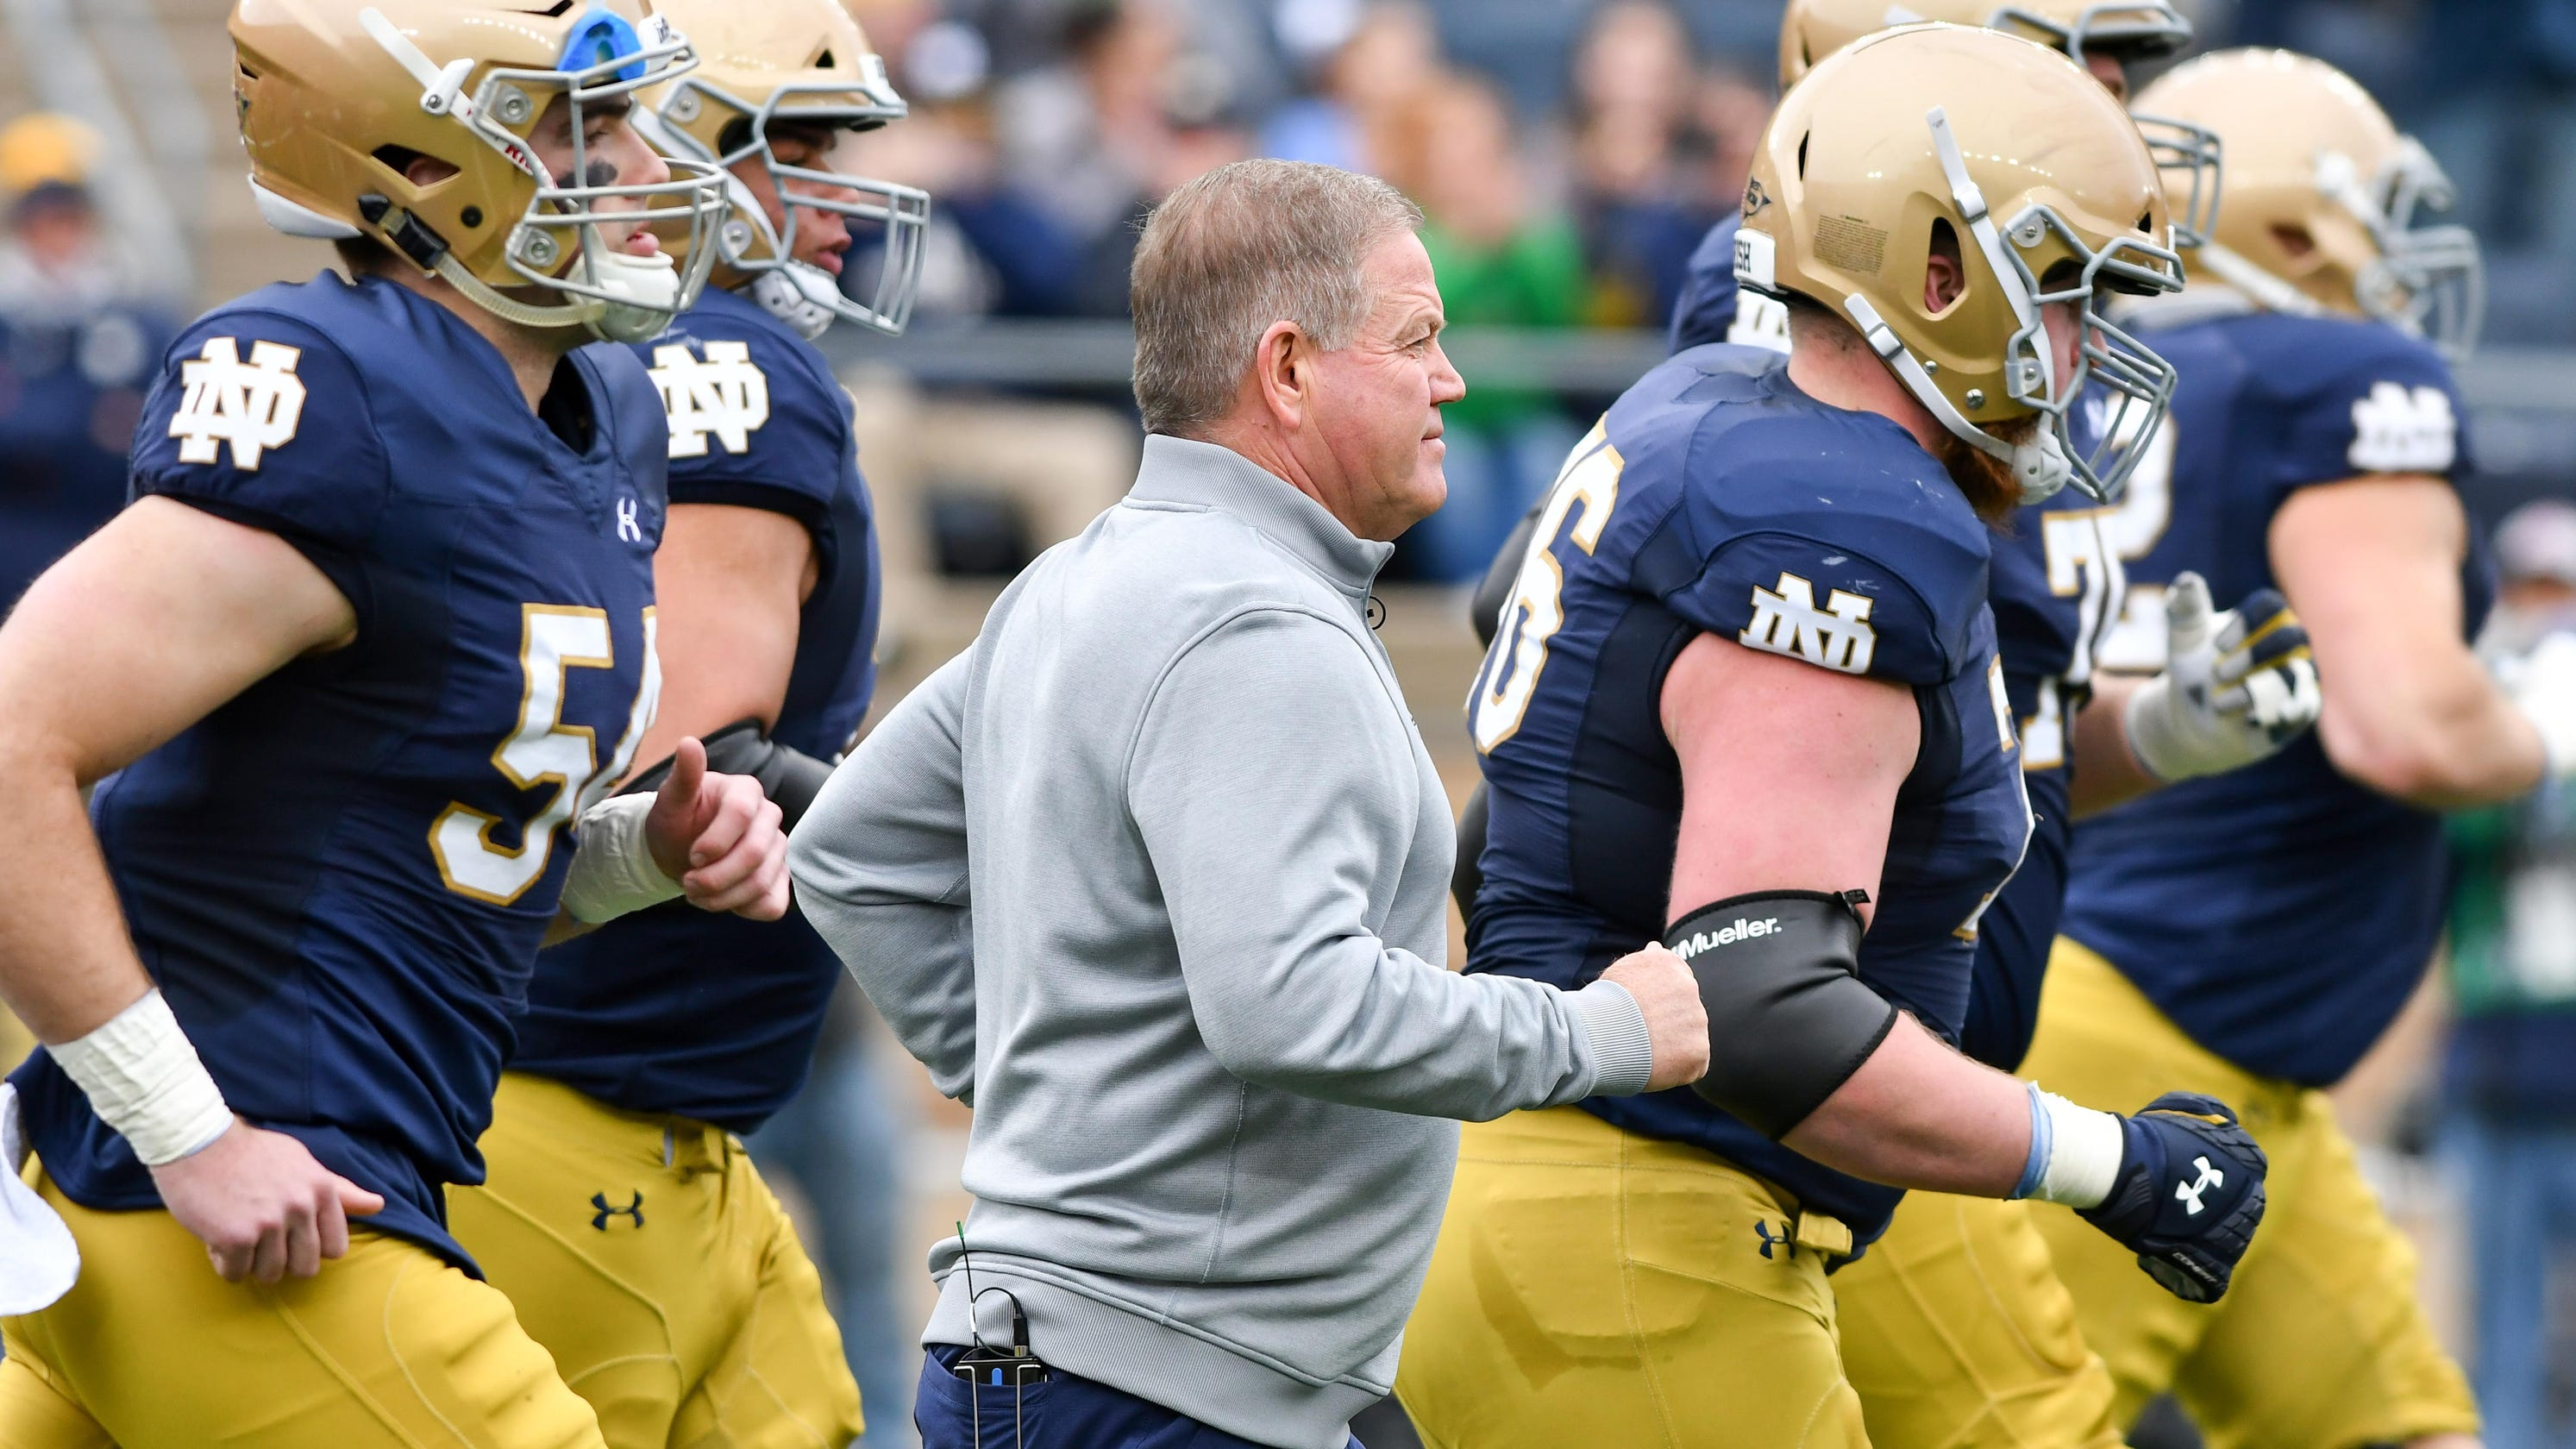 de0f360da Notre Dame football uniforms give nod to New York Yankees for Shamrock  Series